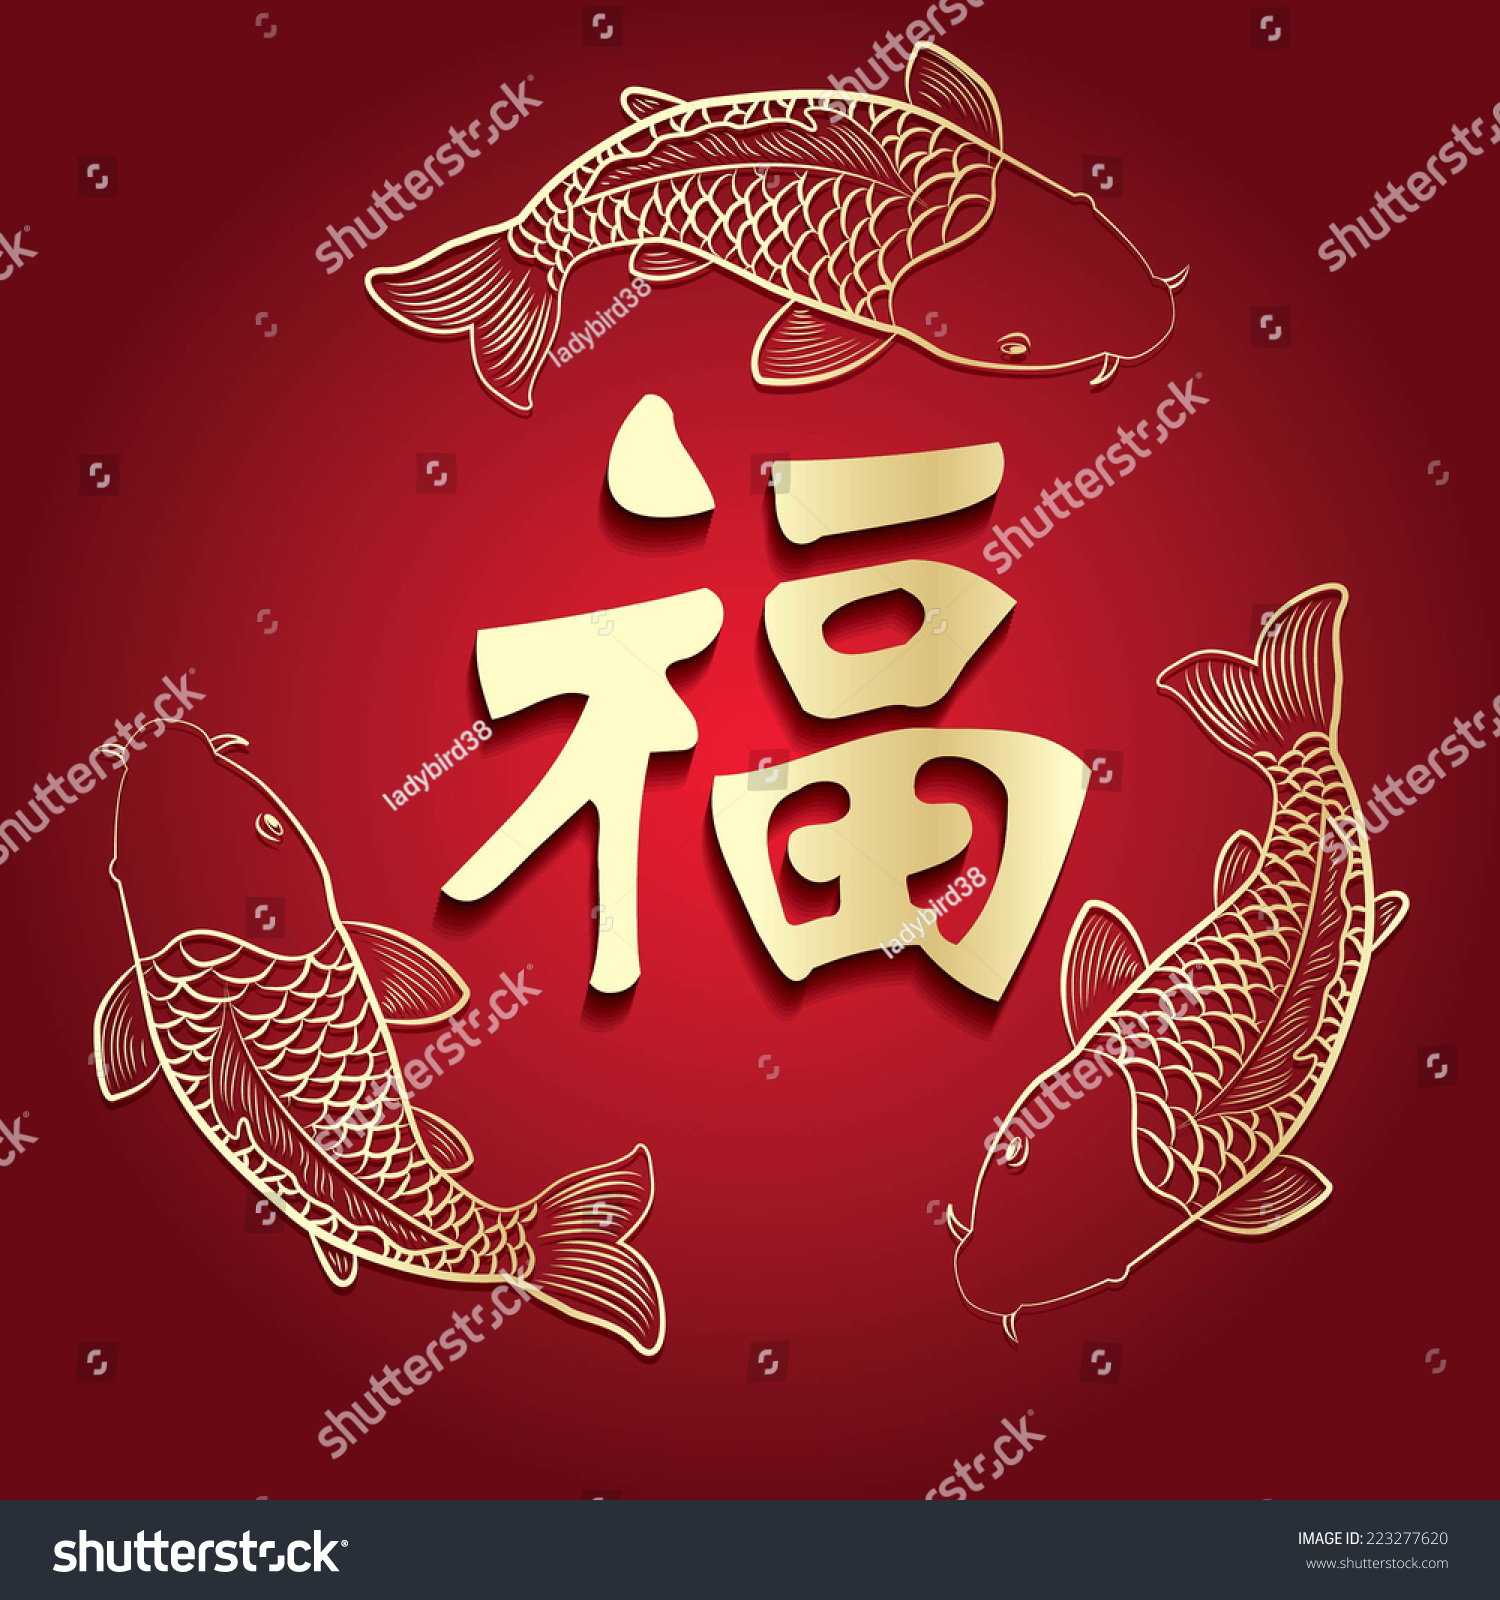 Chinese new year greeting card with calligraphy